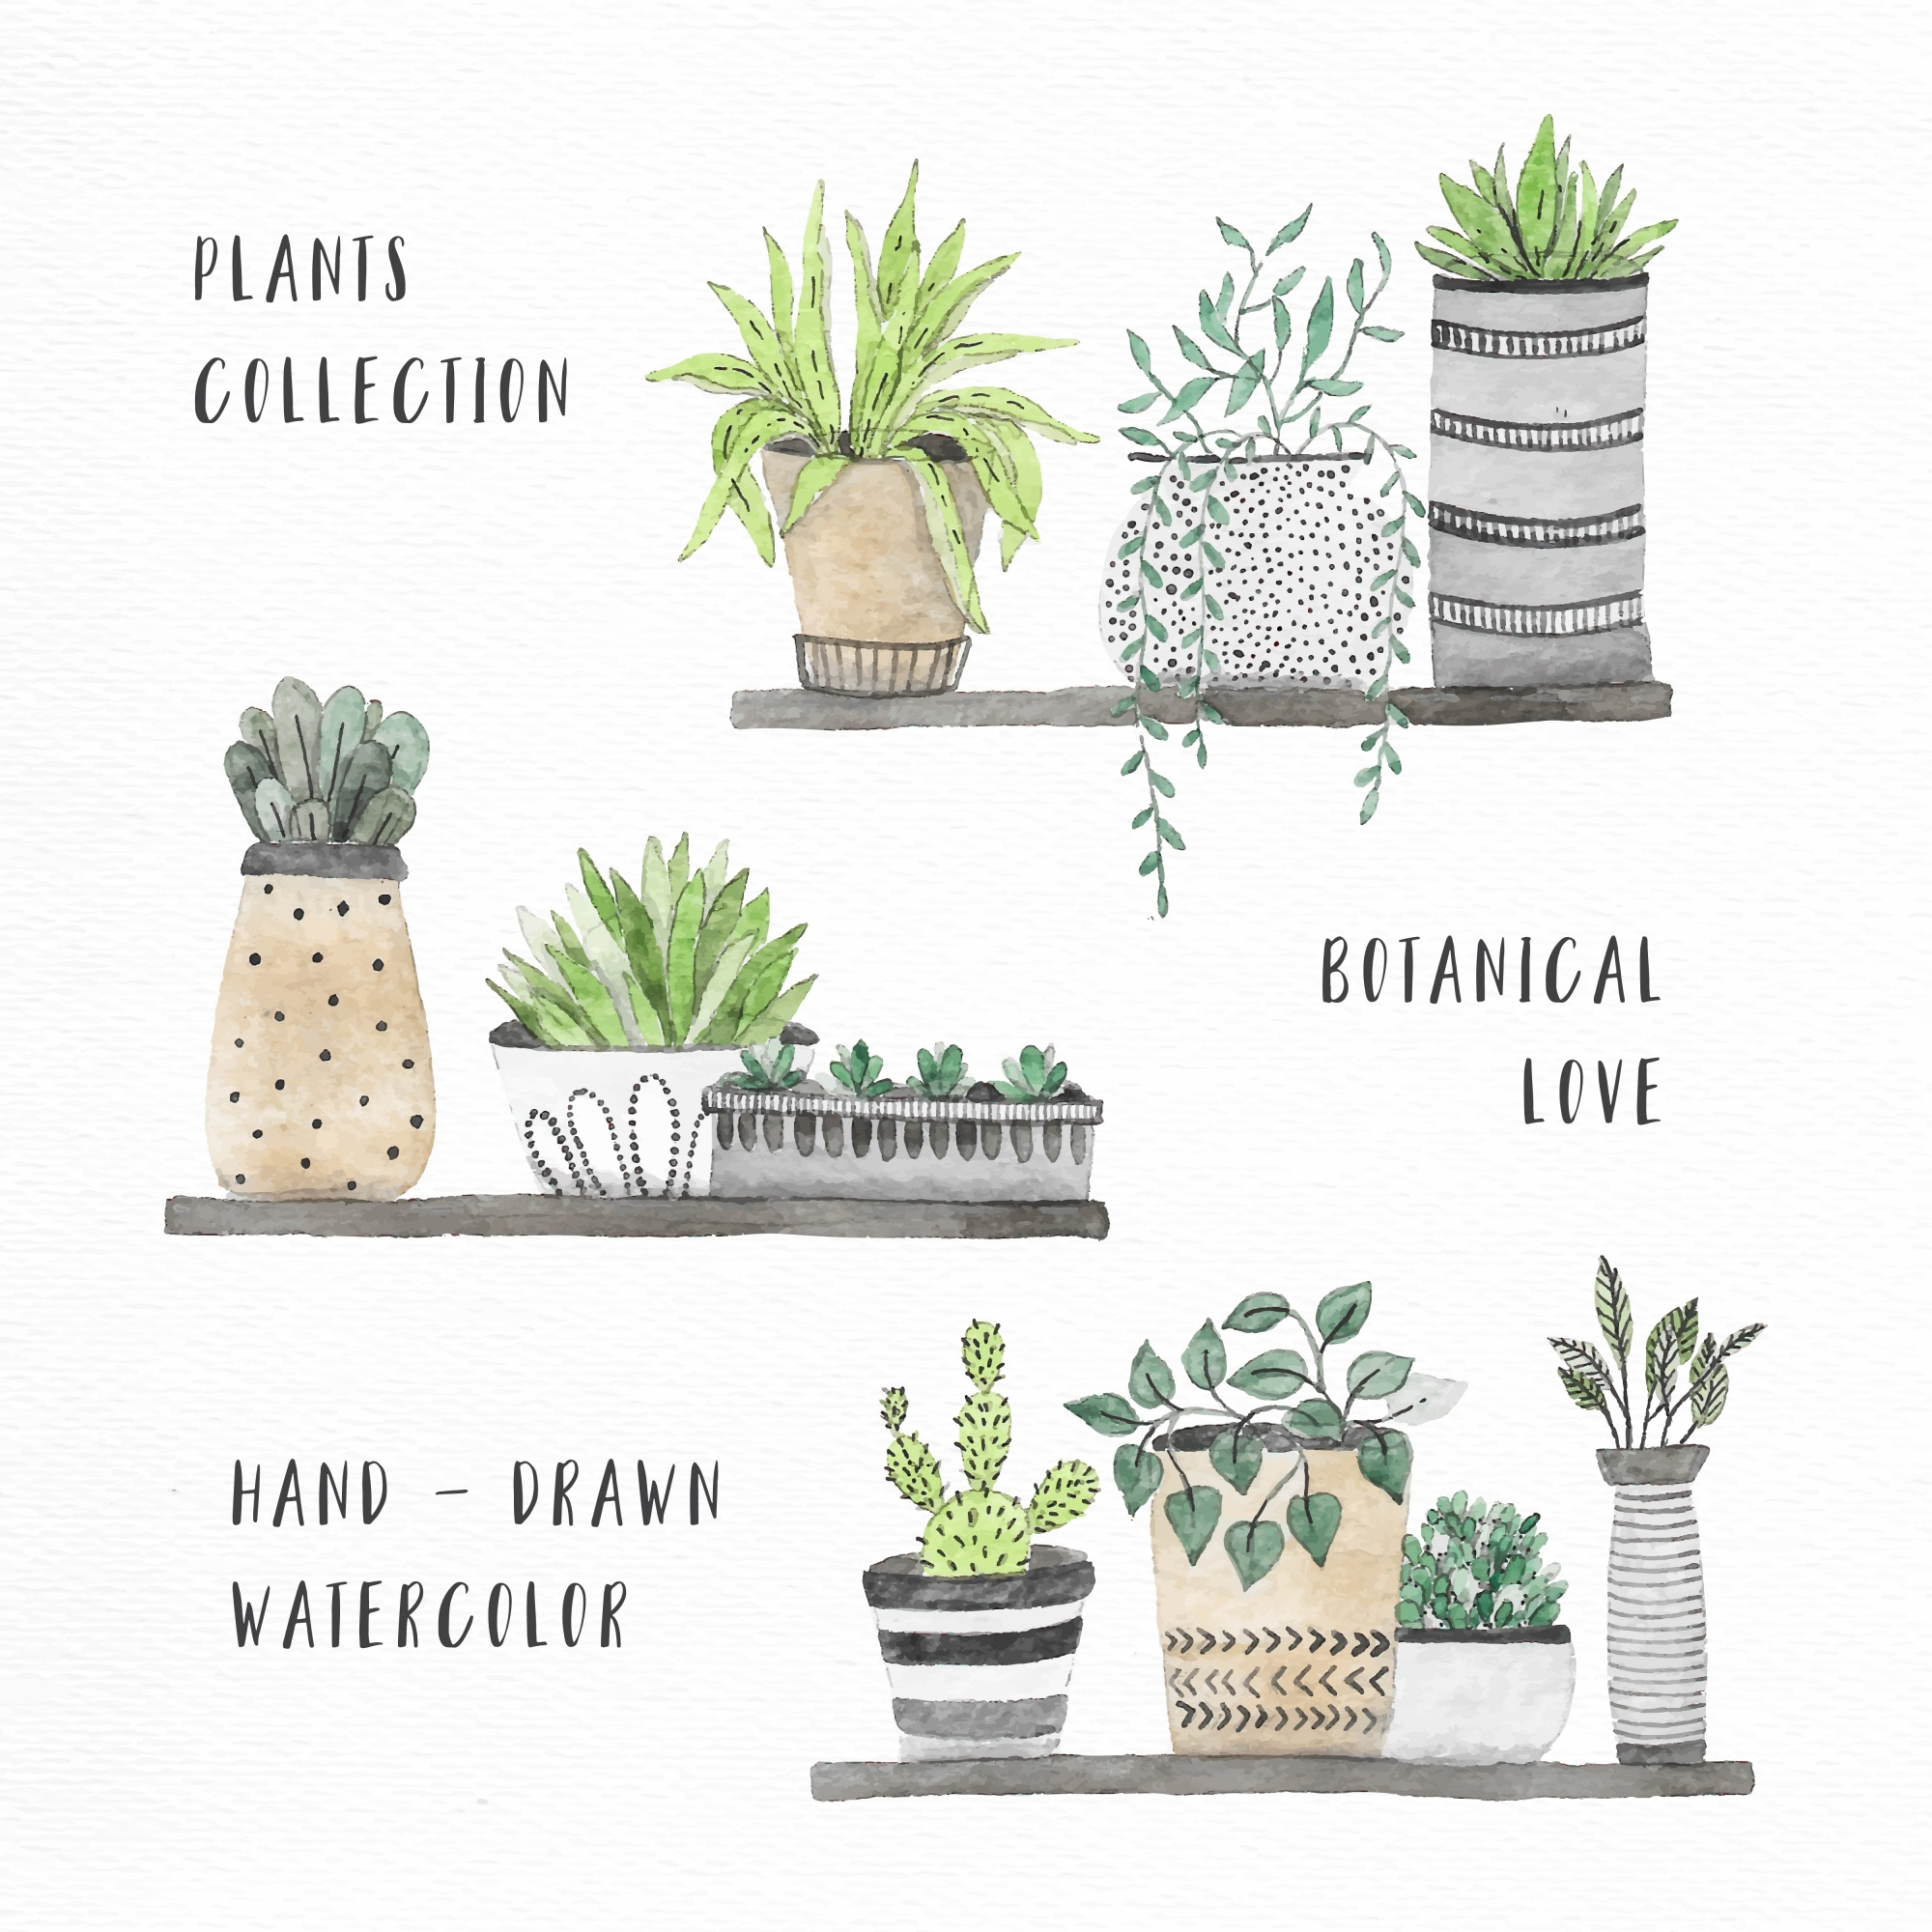 Collection de plantes d'aquarelle